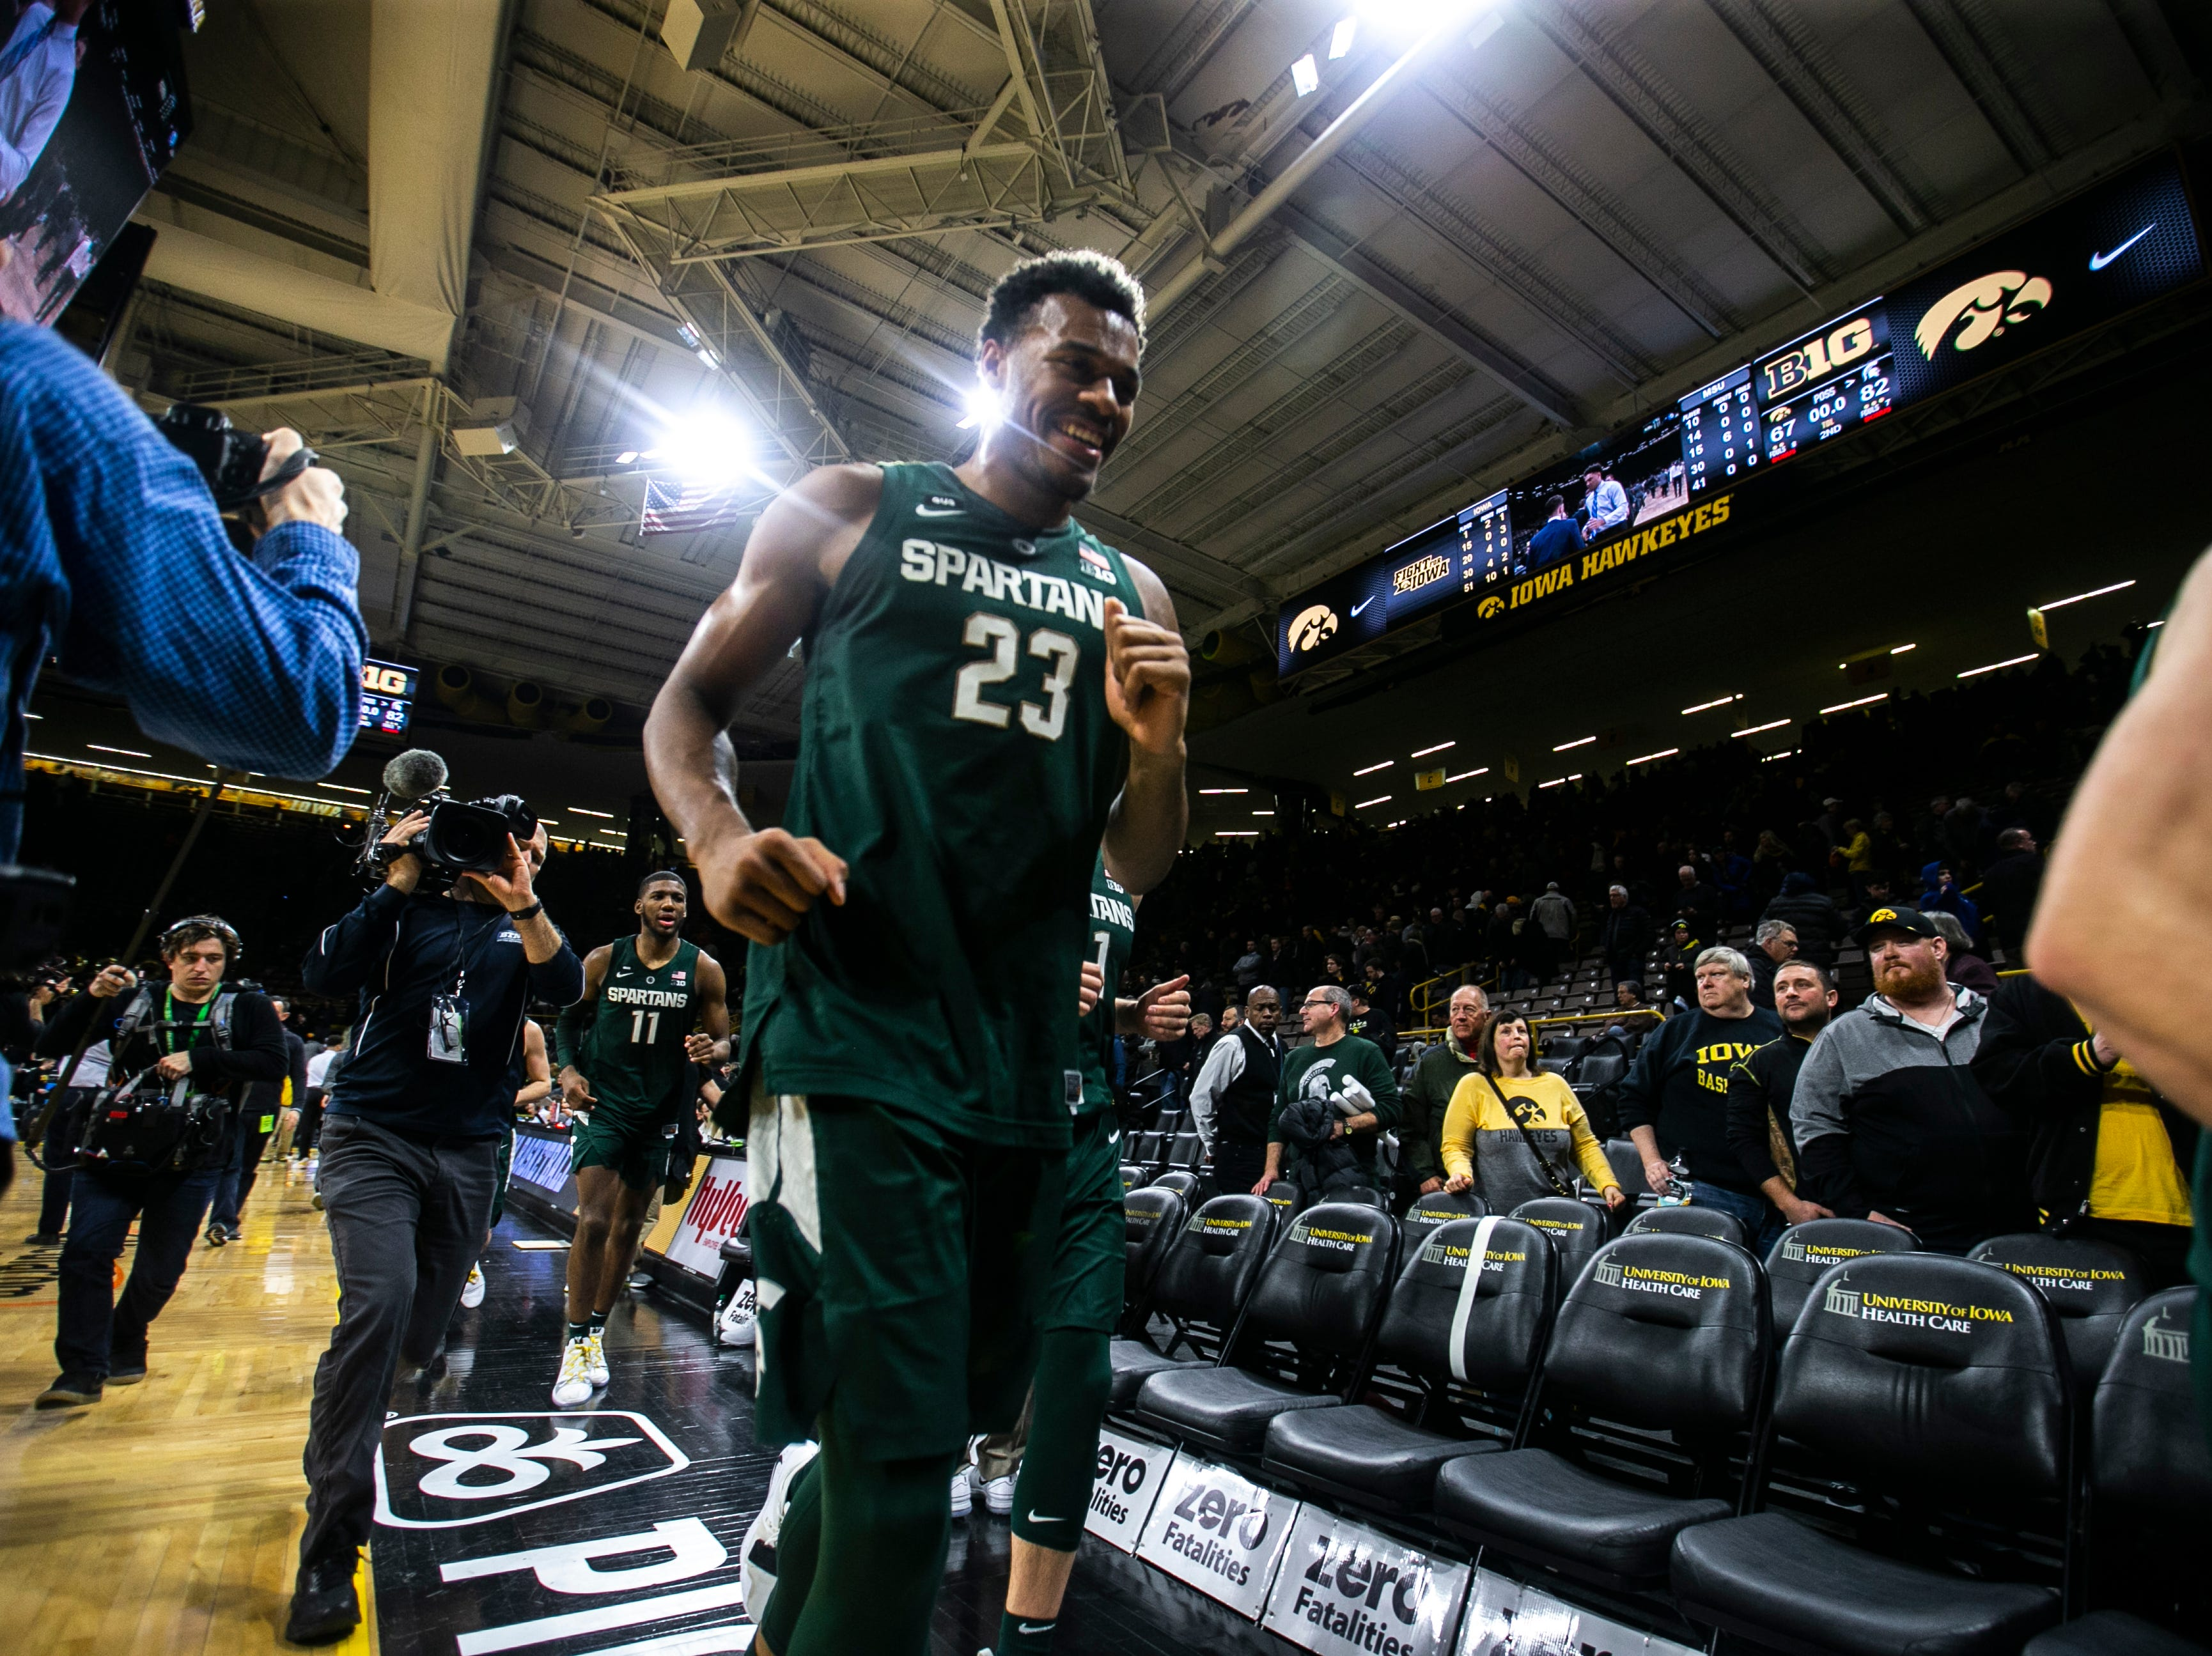 Michigan State forward Xavier Tillman (23) smiles while heading back towards the locker room during a NCAA Big Ten Conference men's basketball game on Thursday, Jan. 24, 2019, at Carver-Hawkeye Arena in Iowa City, Iowa.